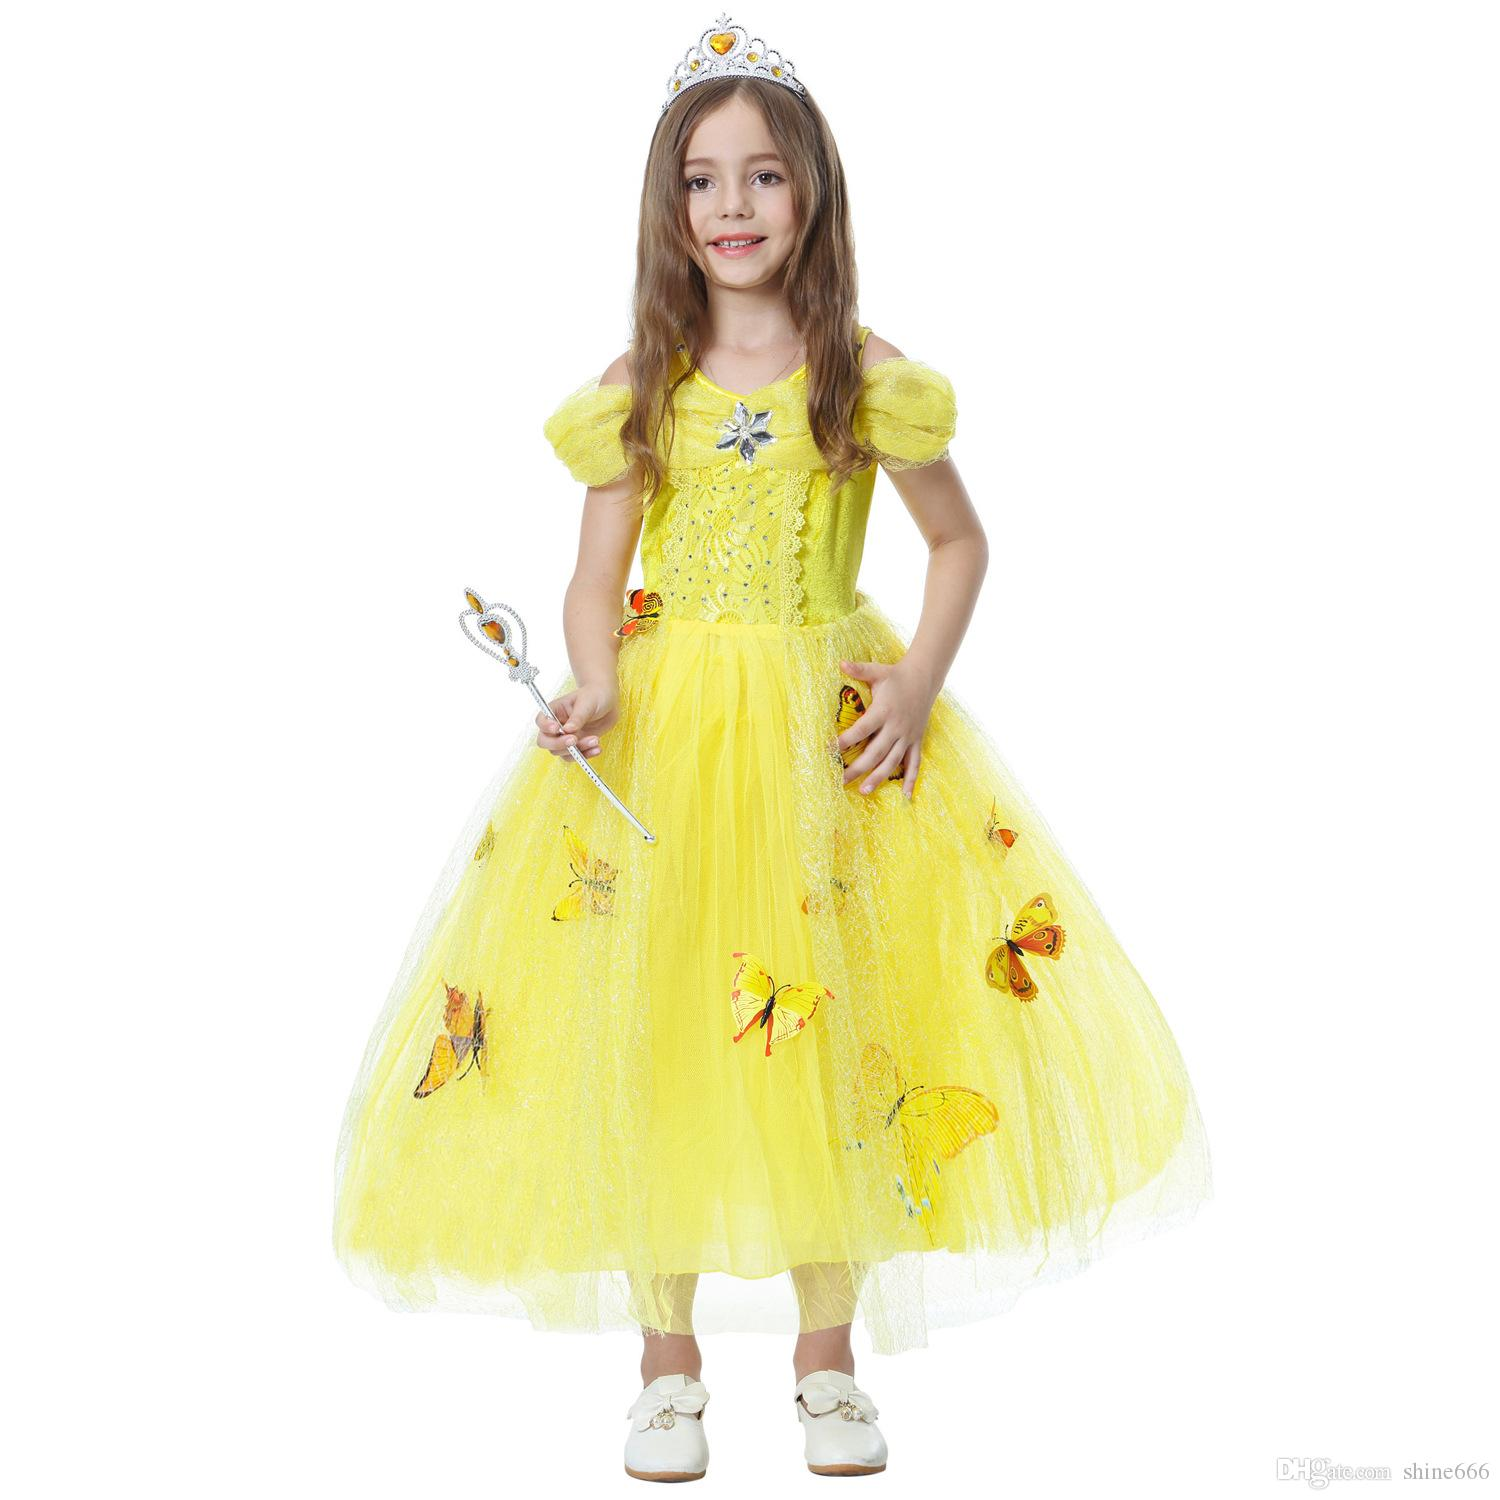 snowflake diamond butterfly dress fancy costumes for kids blue gown Halloween baby girl butterfly dress 5 Layers in stock Girl's Dresses